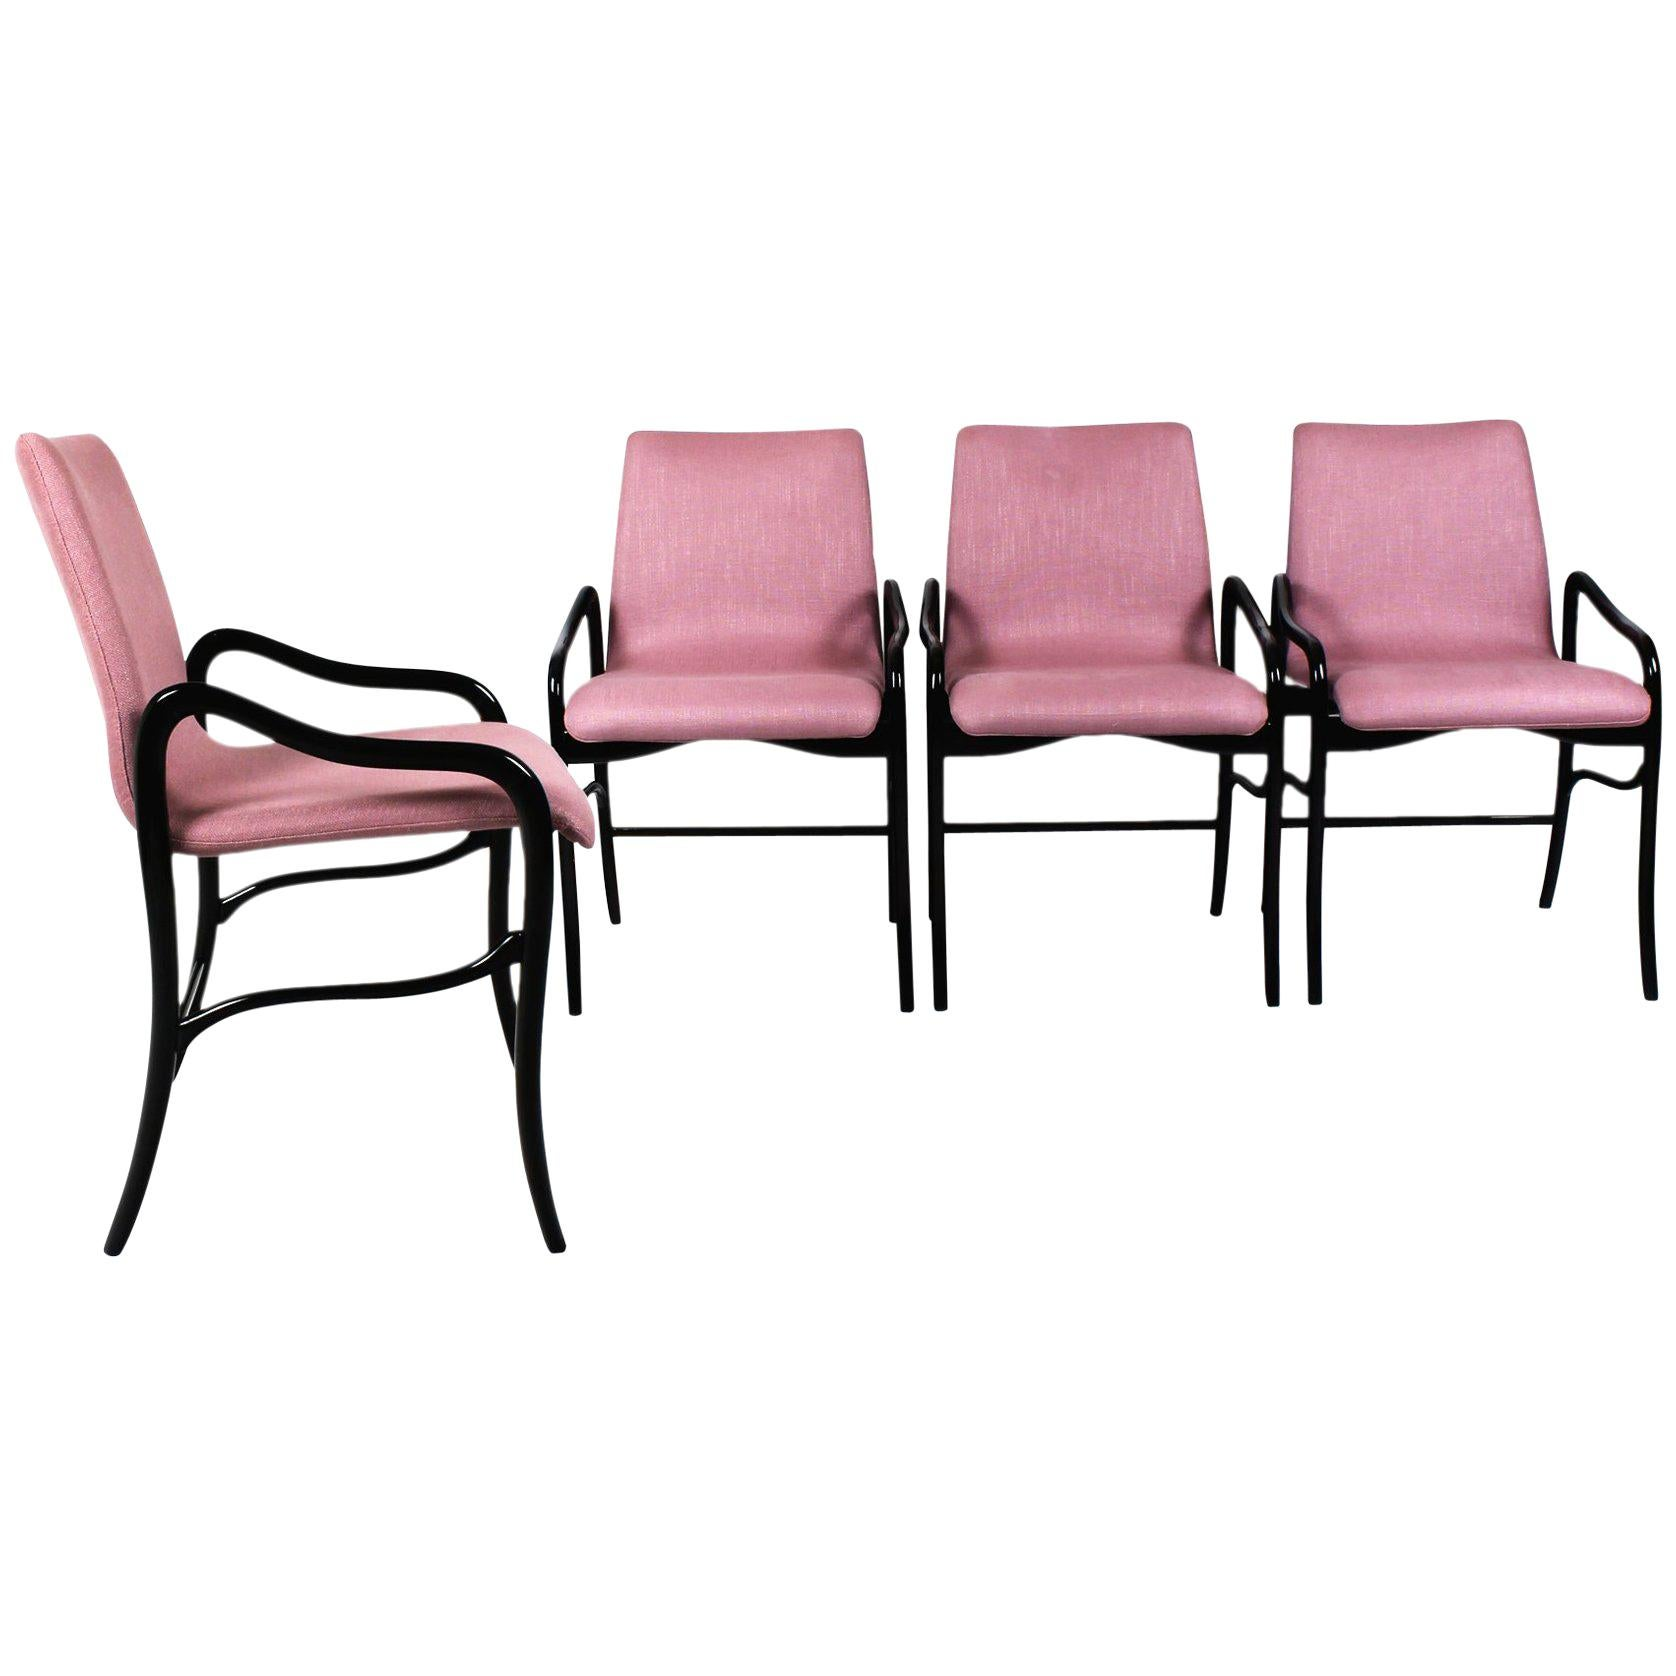 1960s Set of Four Armchairs by Enrico Ciuti, Rounded Beech, Pink Linen, Italy